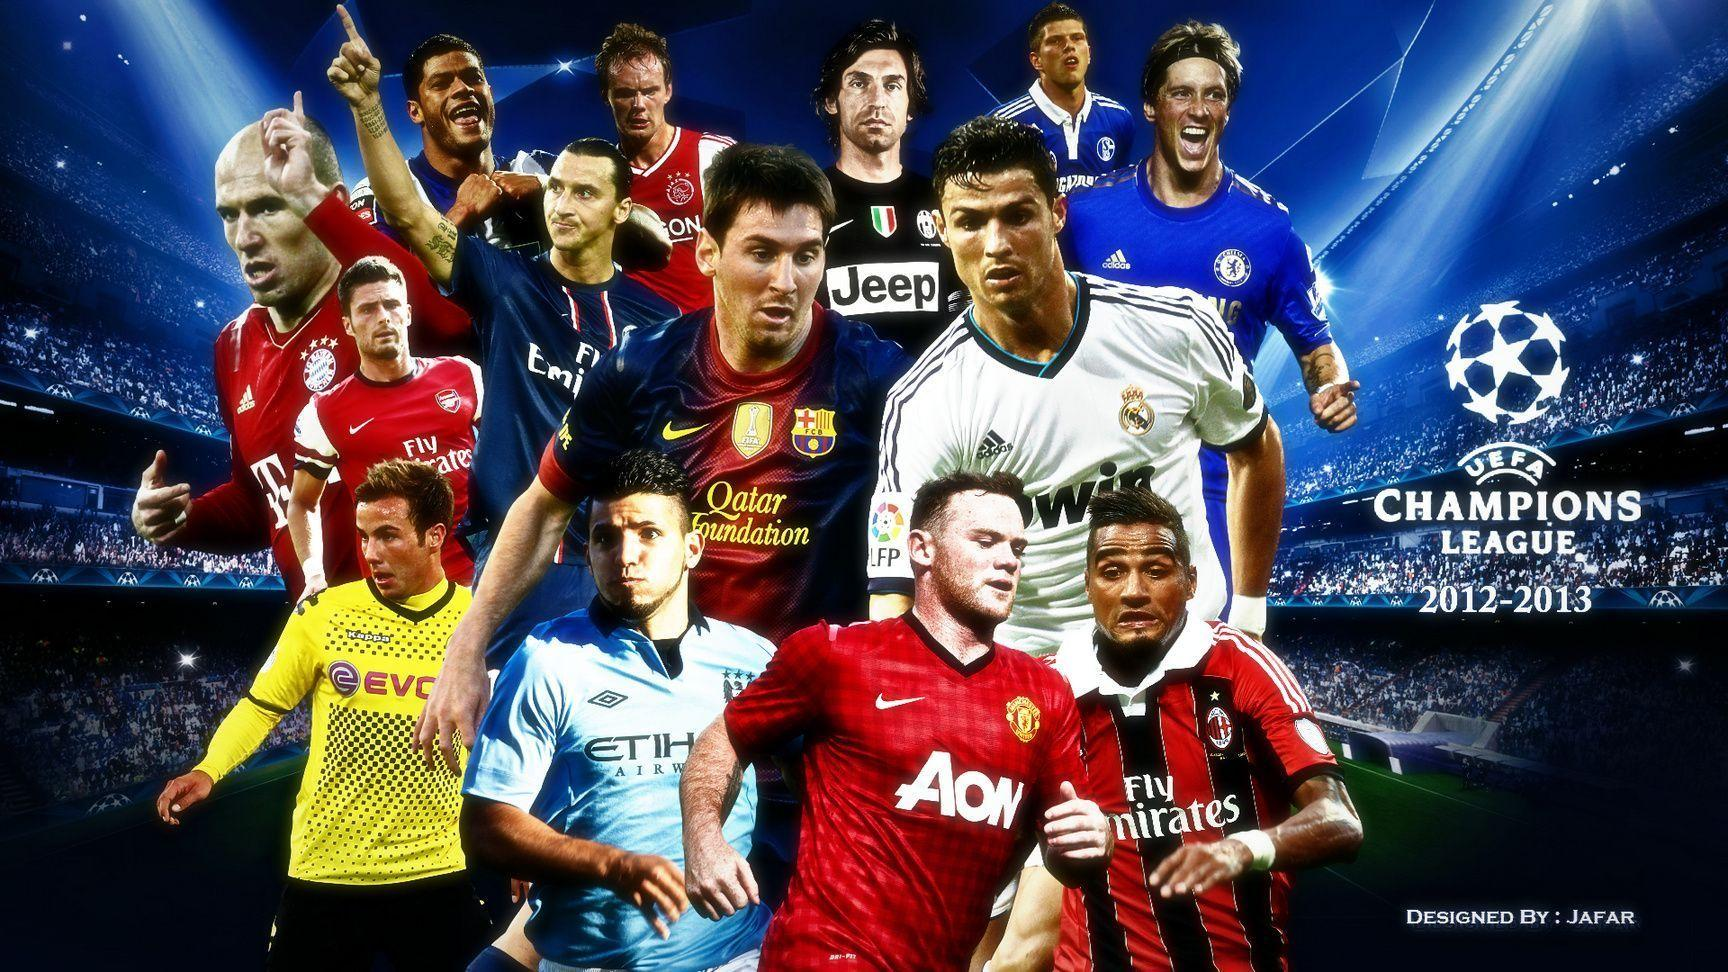 uefa champions league wallpapers wallpaper cave uefa champions league wallpapers